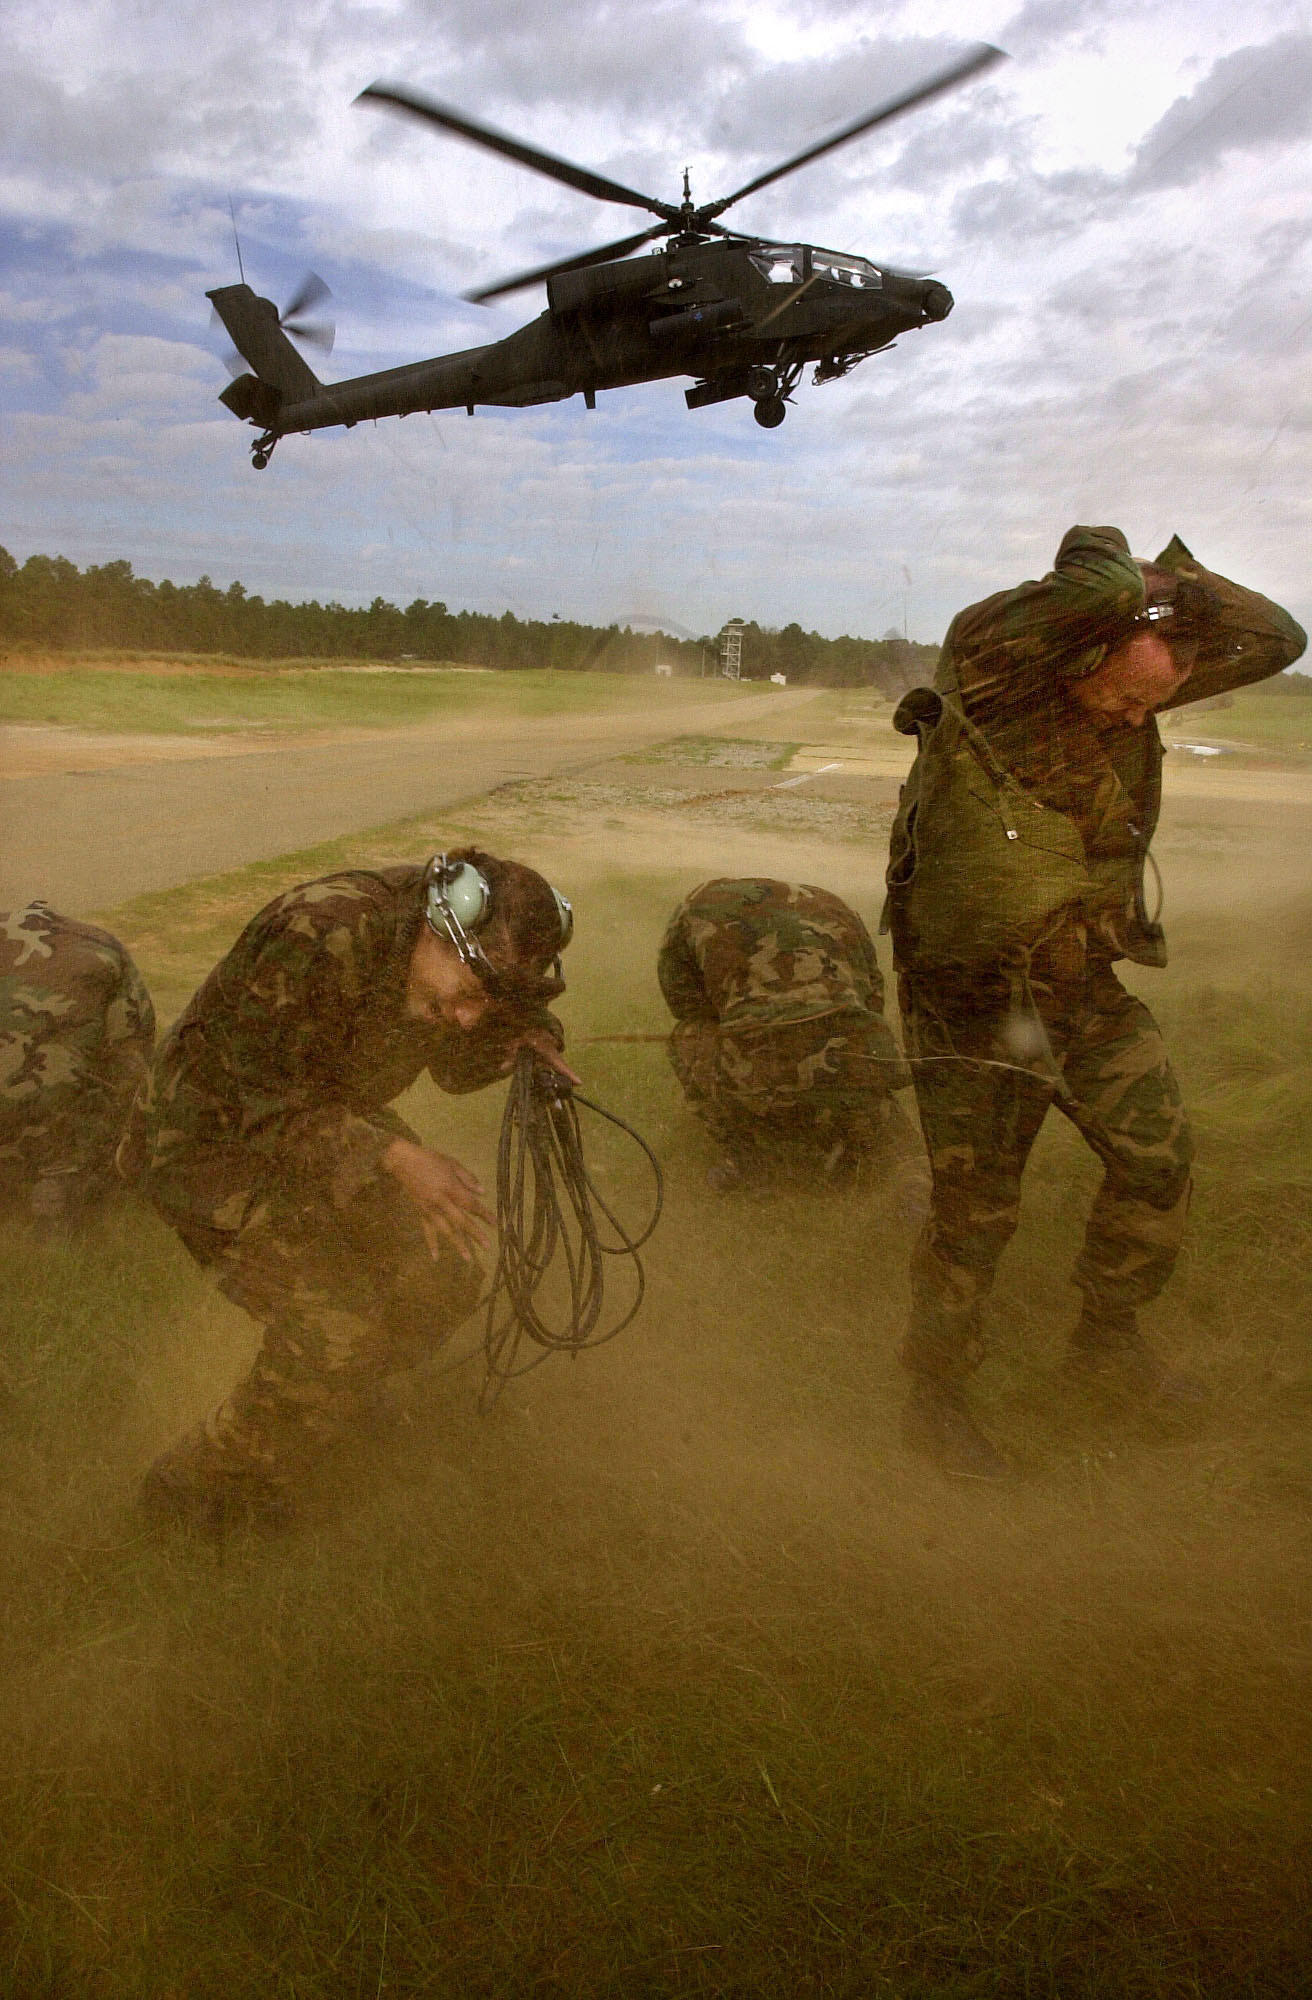 Members of the First Battalion 229th Aviation Regiment, 18th Airborn Corps cover their heads as an AH-64 Apache Helicopter takes off at Fort Bragg Military Post in North Carolina on Tuesday, Sept. 25, 2001. (Heather Stone/Chicago Tribune) (Fort Bragg, North Carolina, Army Base, Military Training, Maneuvers, Terrorism, Terrorist Attacks, 82nd Airborne Division Speical Operations Force, Helicopter)